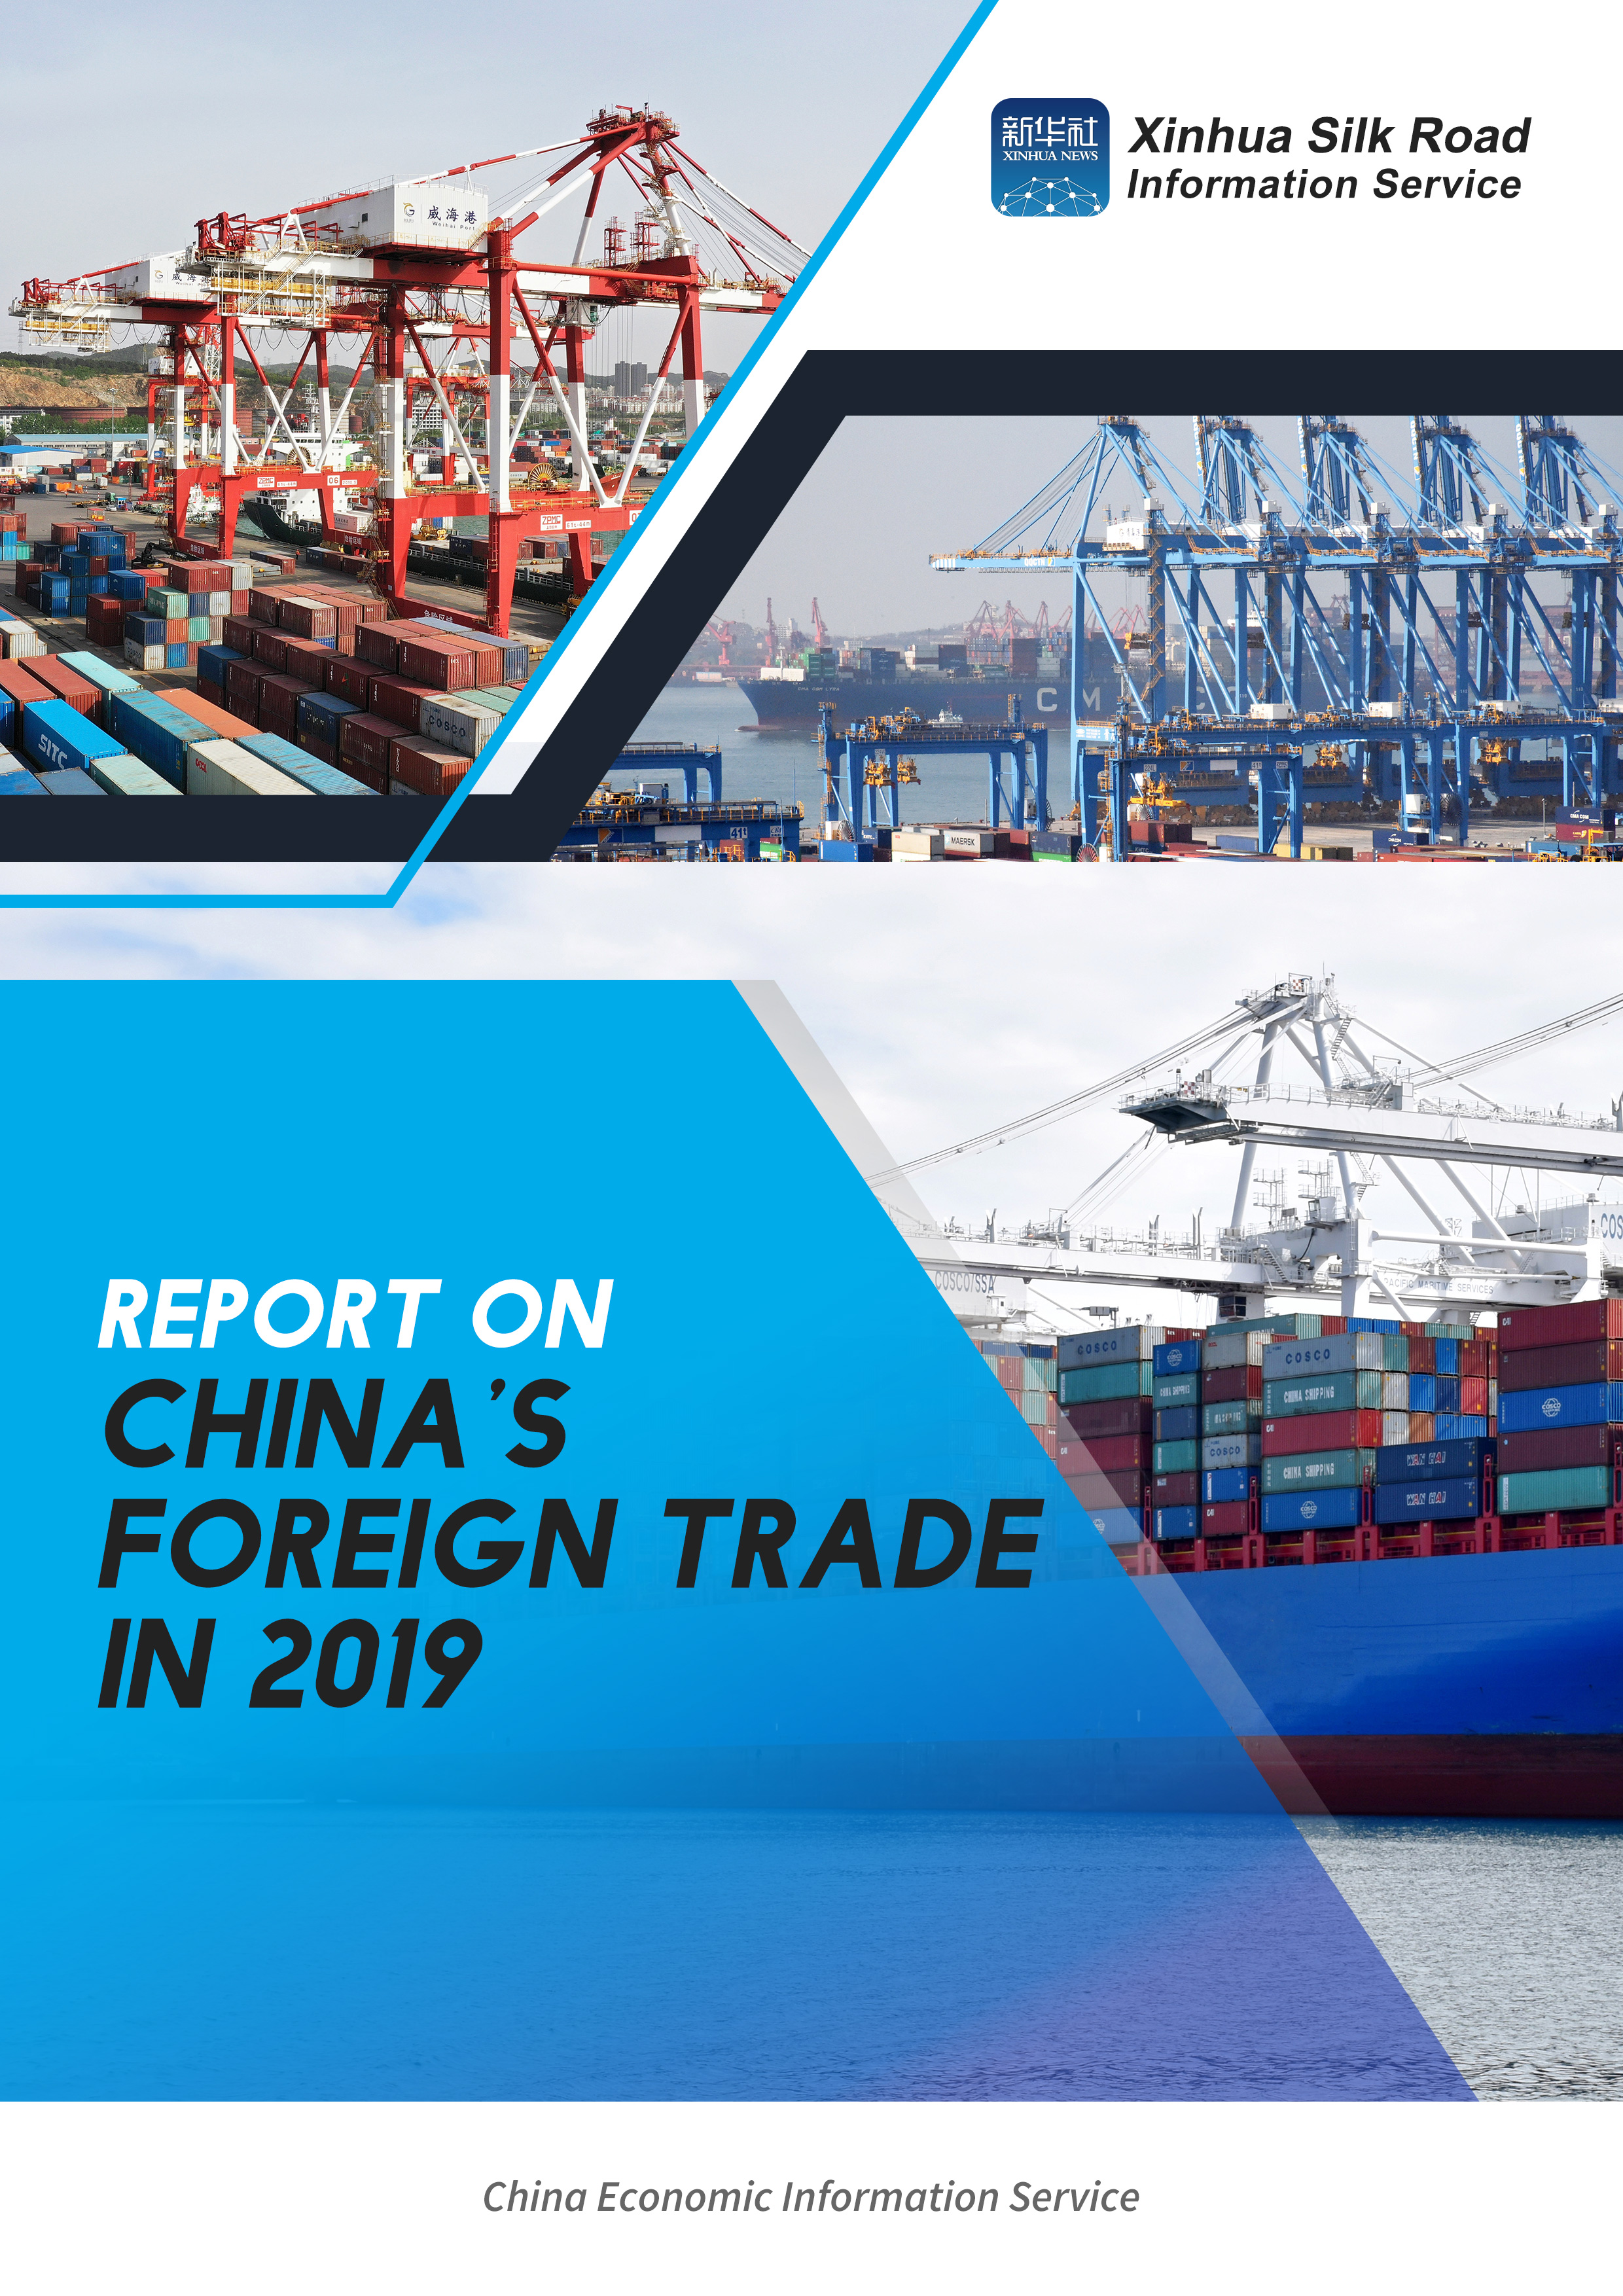 Xinhua Silk Road releases report on China's foreign trade in 2019